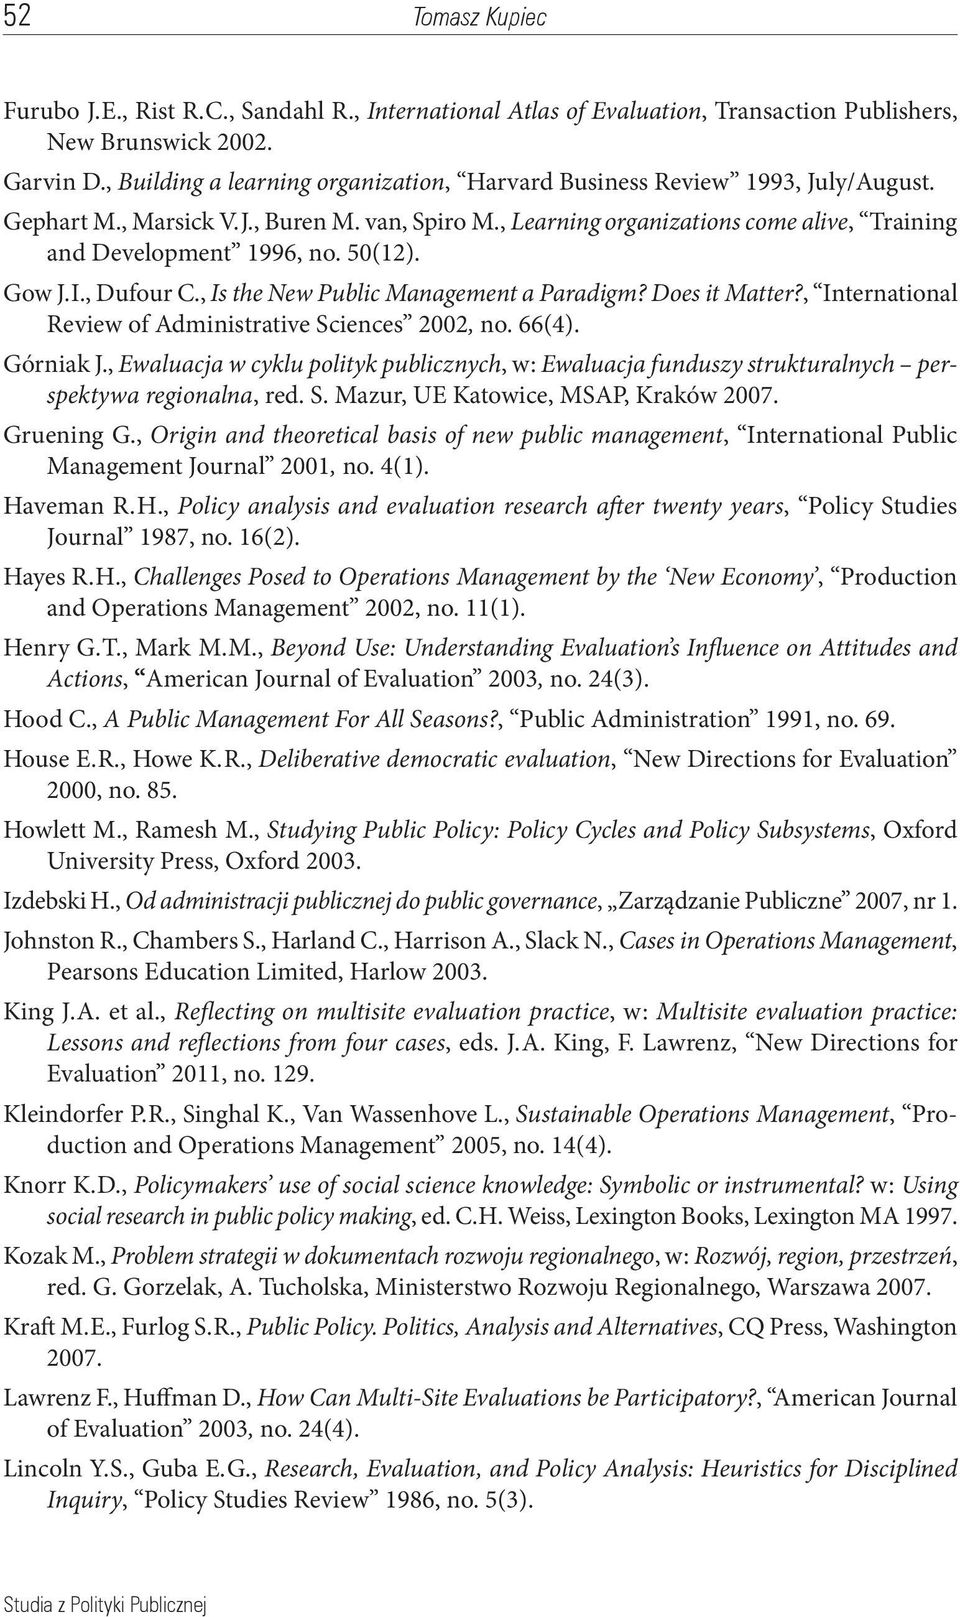 50(12). Gow J. I., Dufour C., Is the New Public Management a Paradigm? Does it Matter?, International Review of Administrative Sciences 2002, no. 66(4). Górniak J.